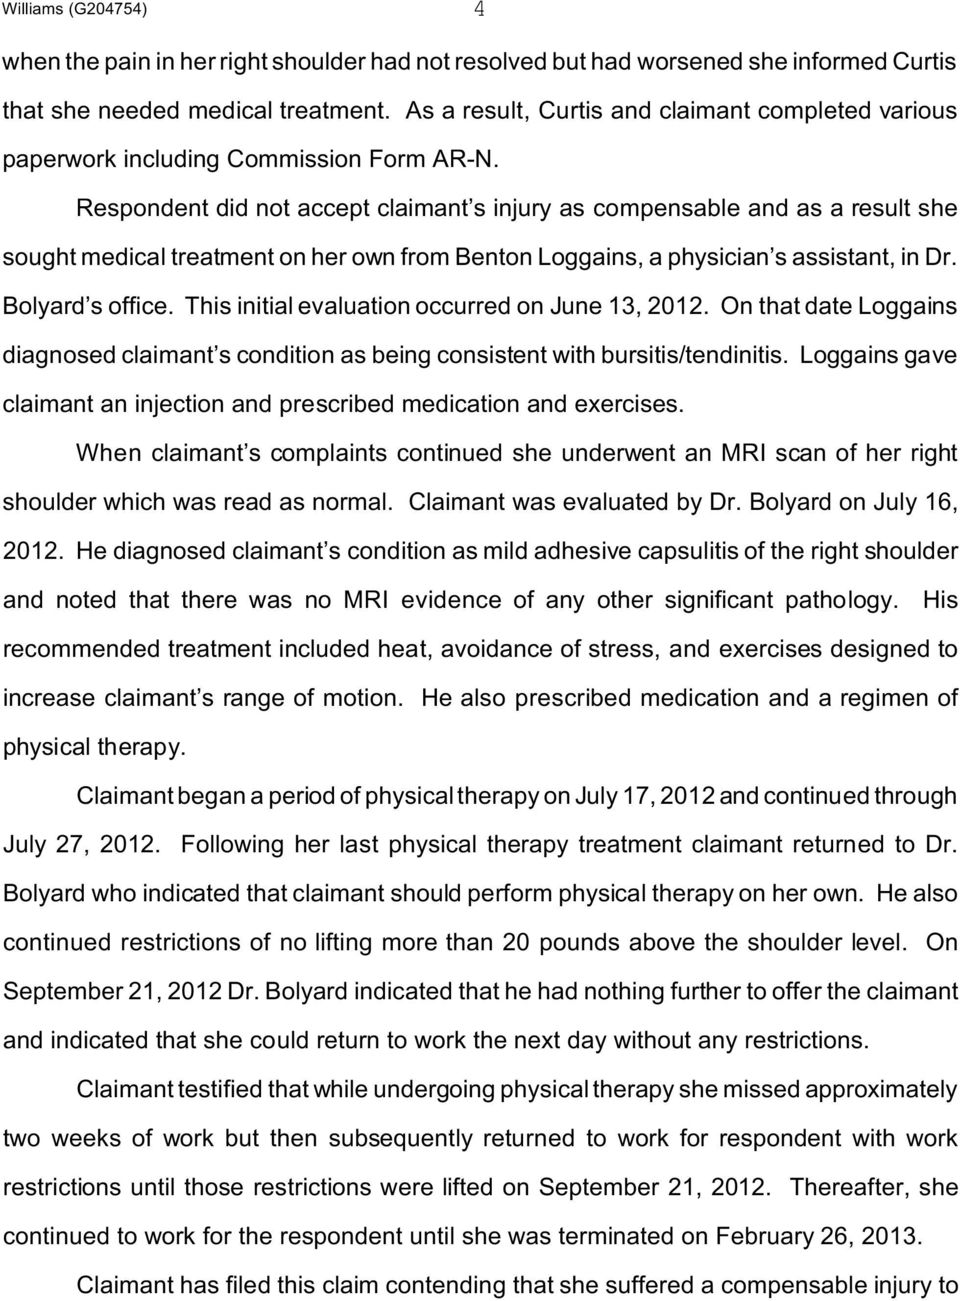 Respondent did not accept claimant s injury as compensable and as a result she sought medical treatment on her own from Benton Loggains, a physician s assistant, in Dr. Bolyard s office.